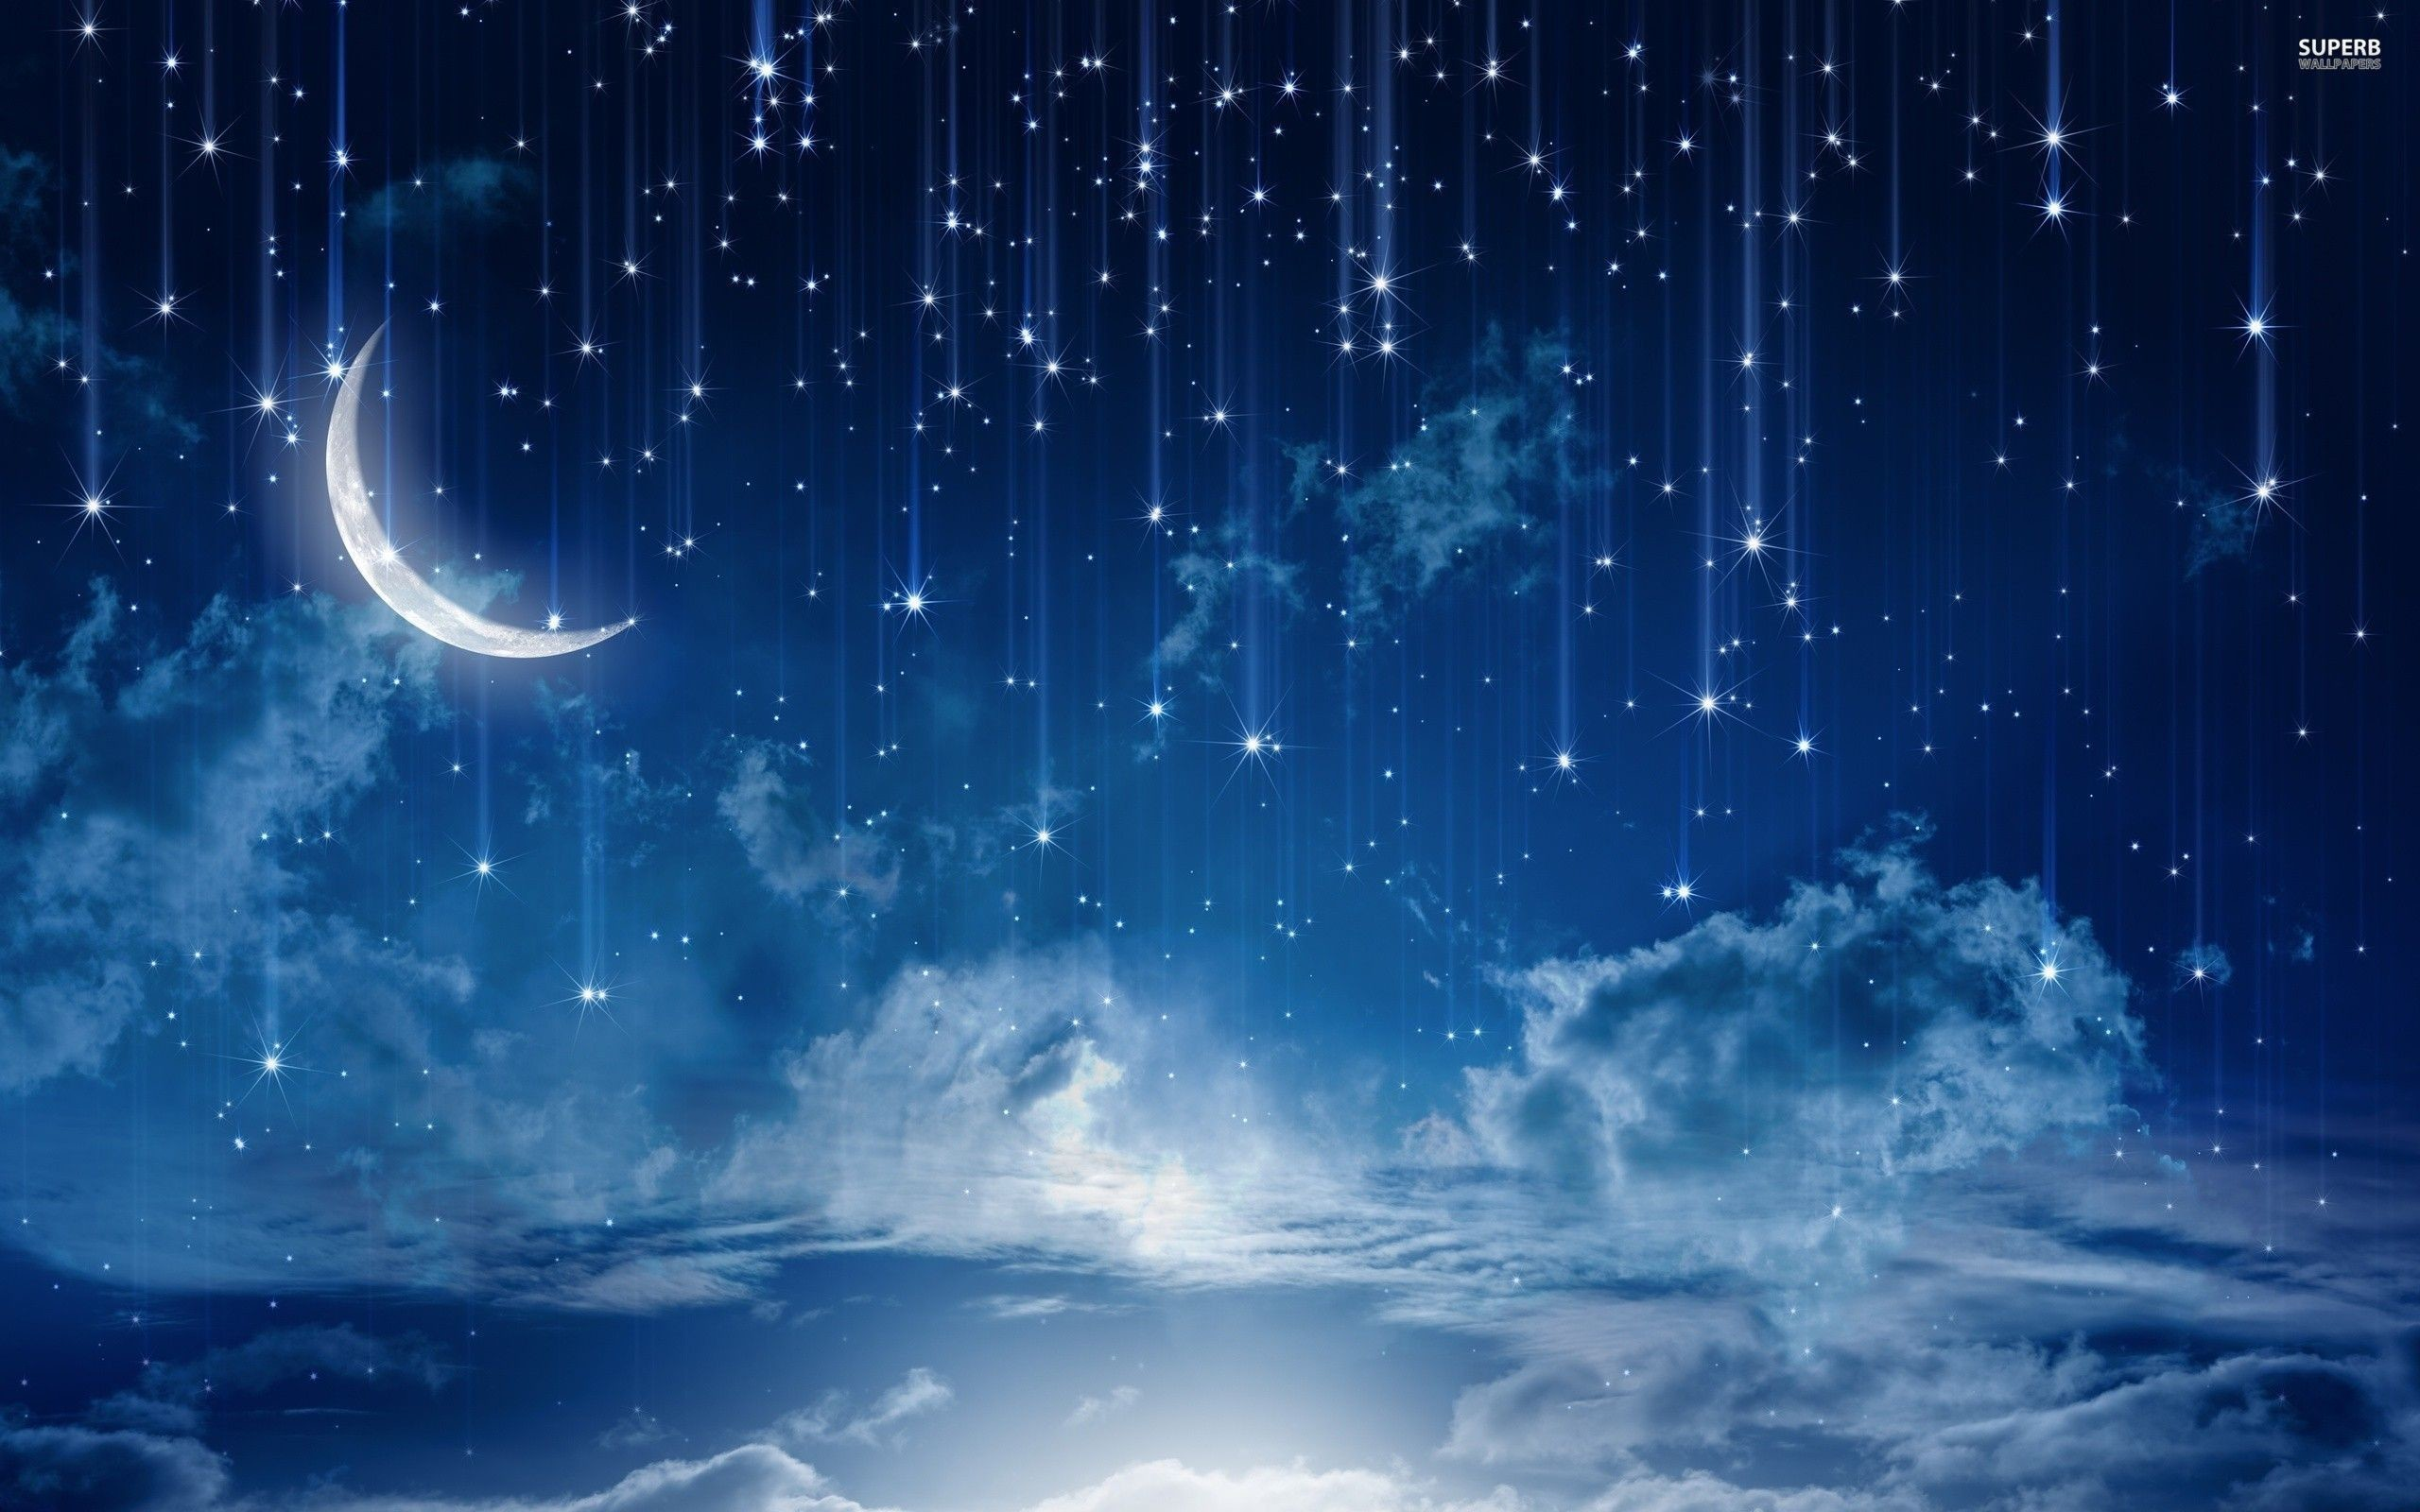 Feed Pictures – The Beautiful Night Sky Hd Widescreen Wallpaper Landscape  Wallpaper Pictures